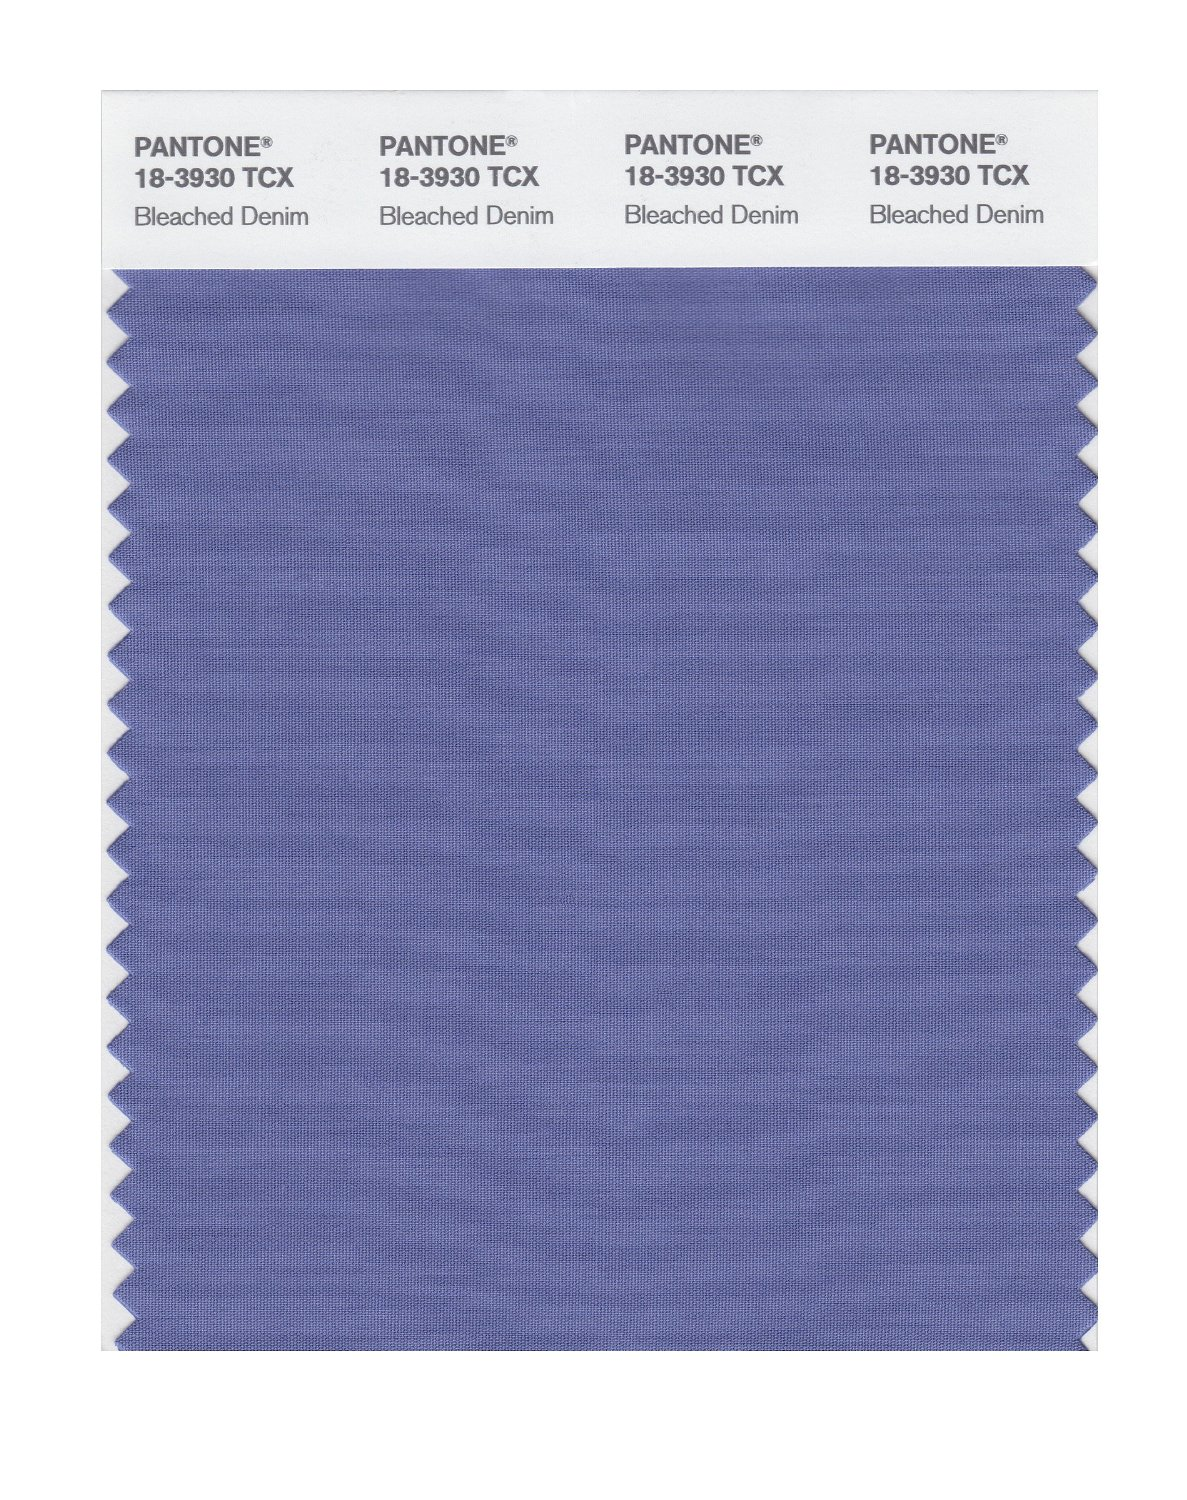 Pantone Smart Swatch 18-3930 Bleached Denim